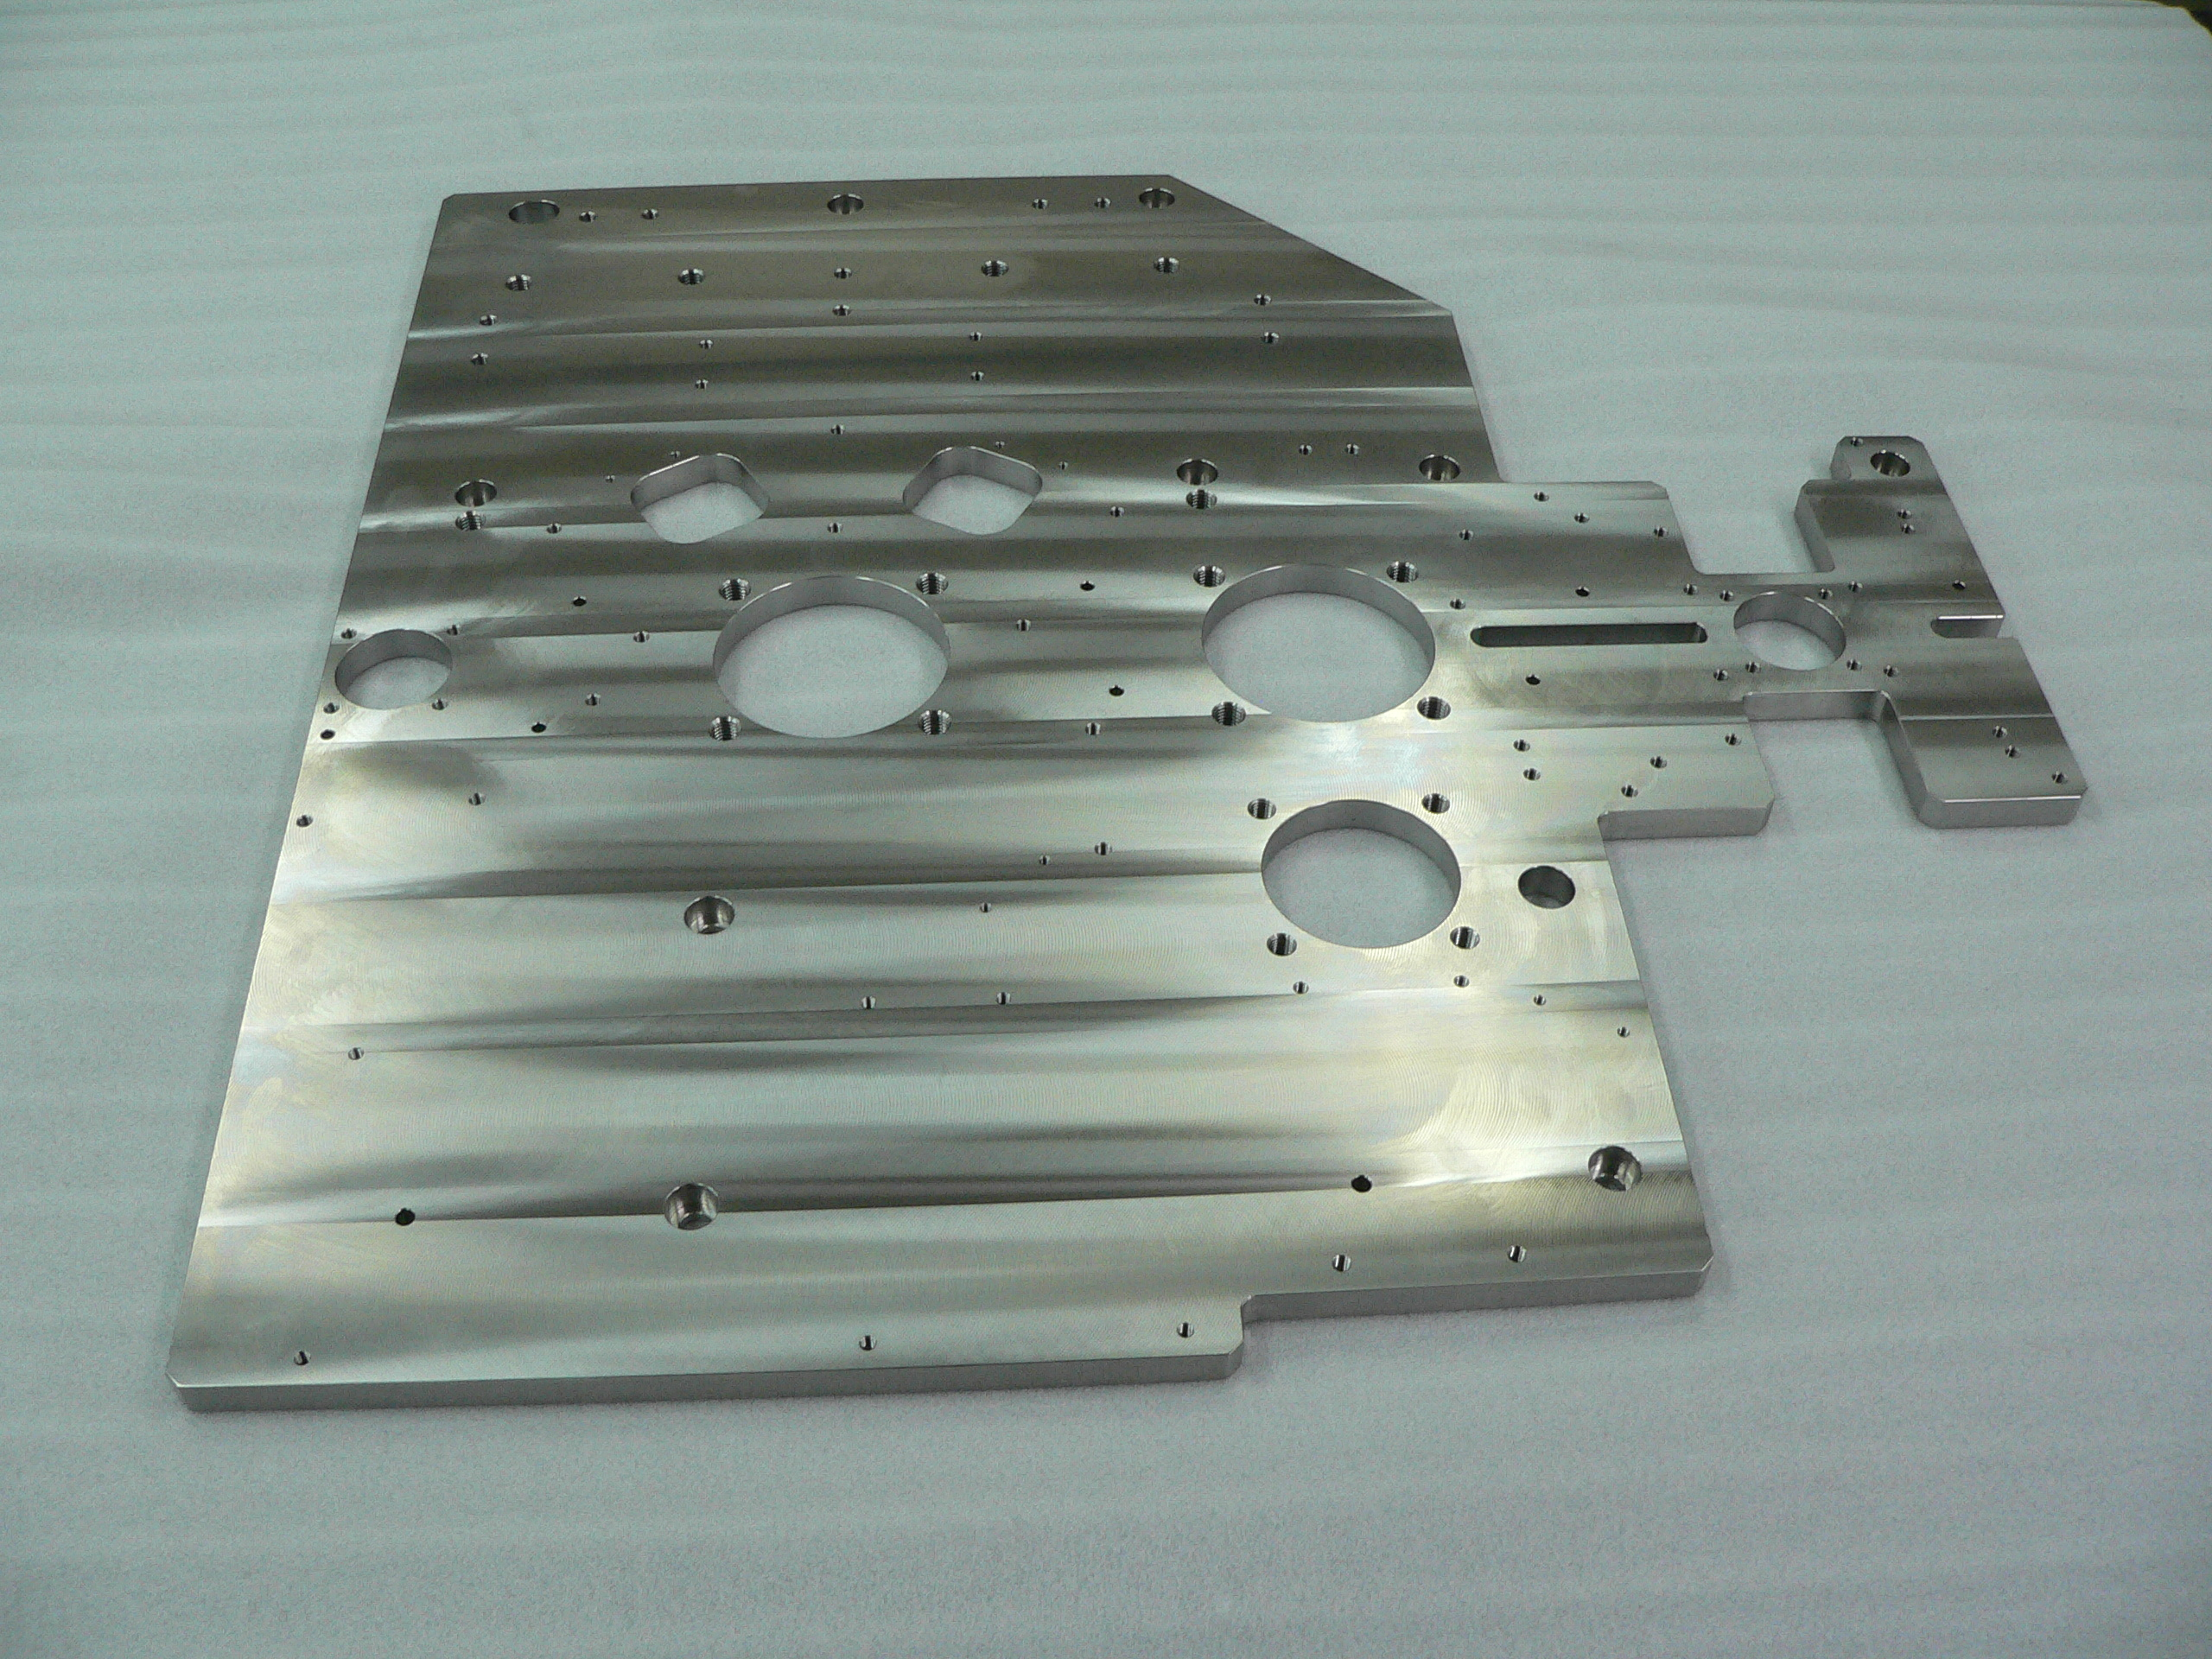 Precision machining of large stainless steel plates SUS303 · SUS304 - hole pitch parallelism and flatness